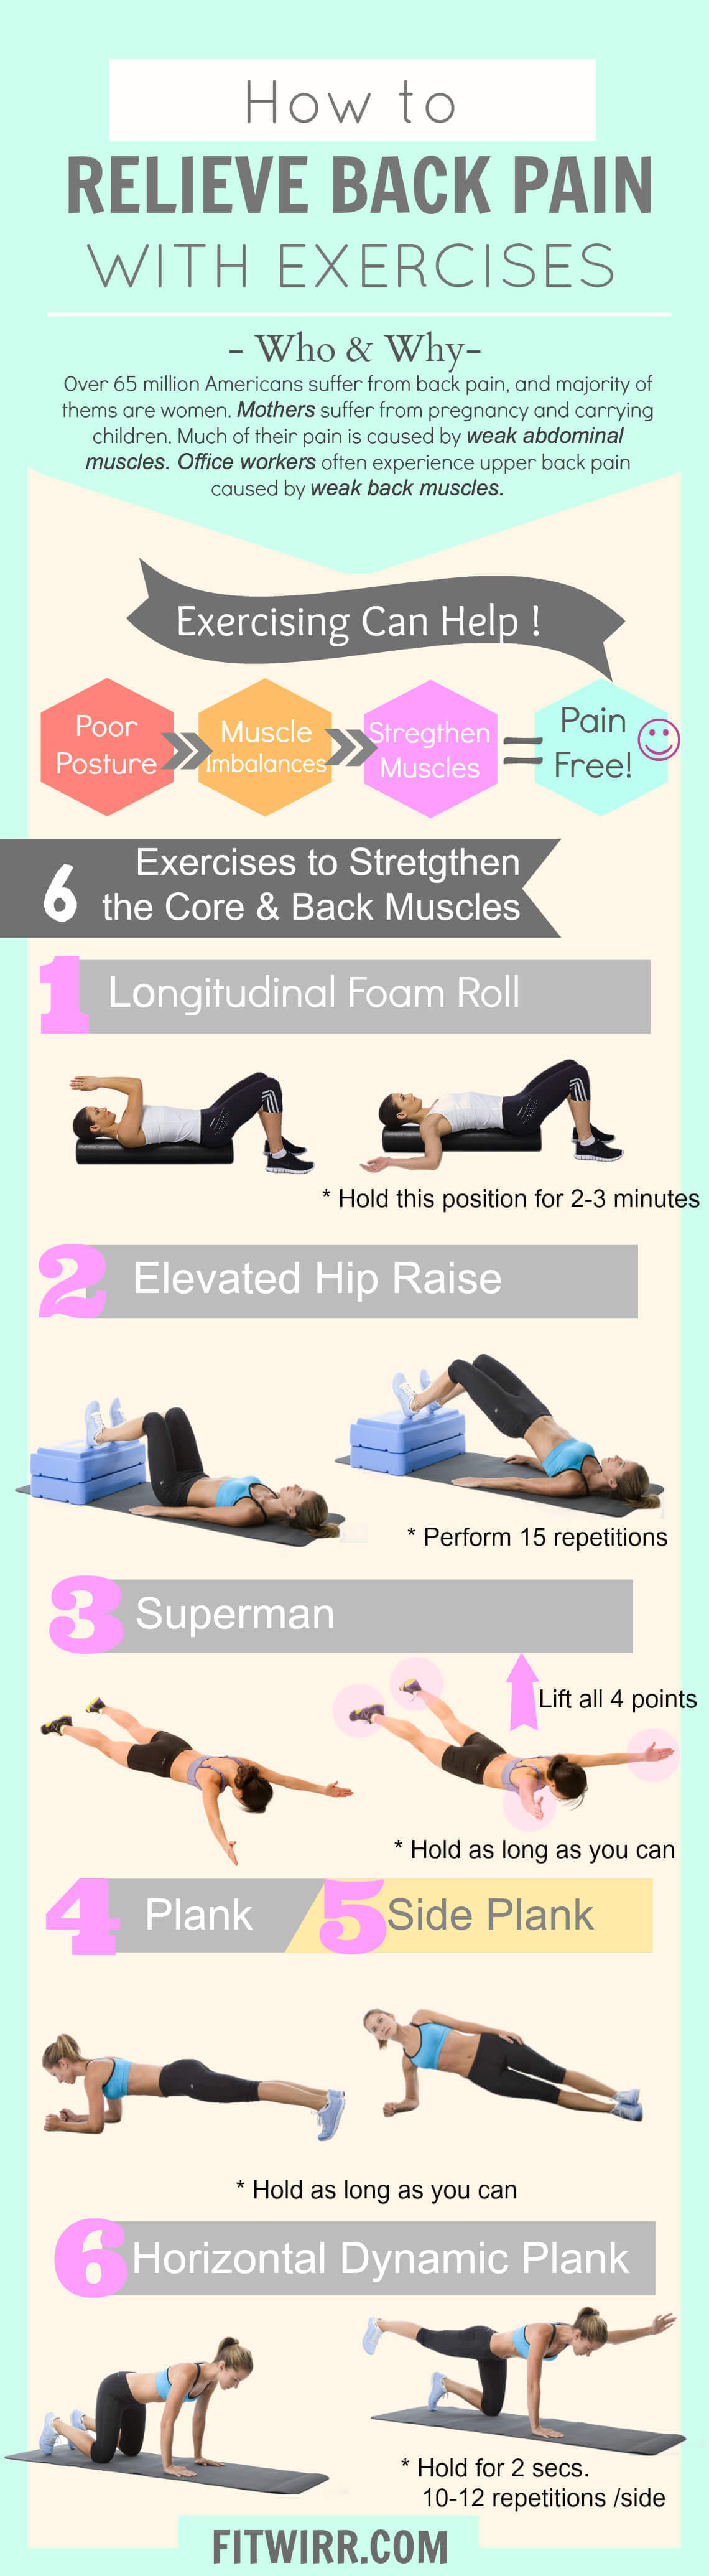 Exercise For Lower Back Pain Workouts Providing Pain Relief Pictures ...